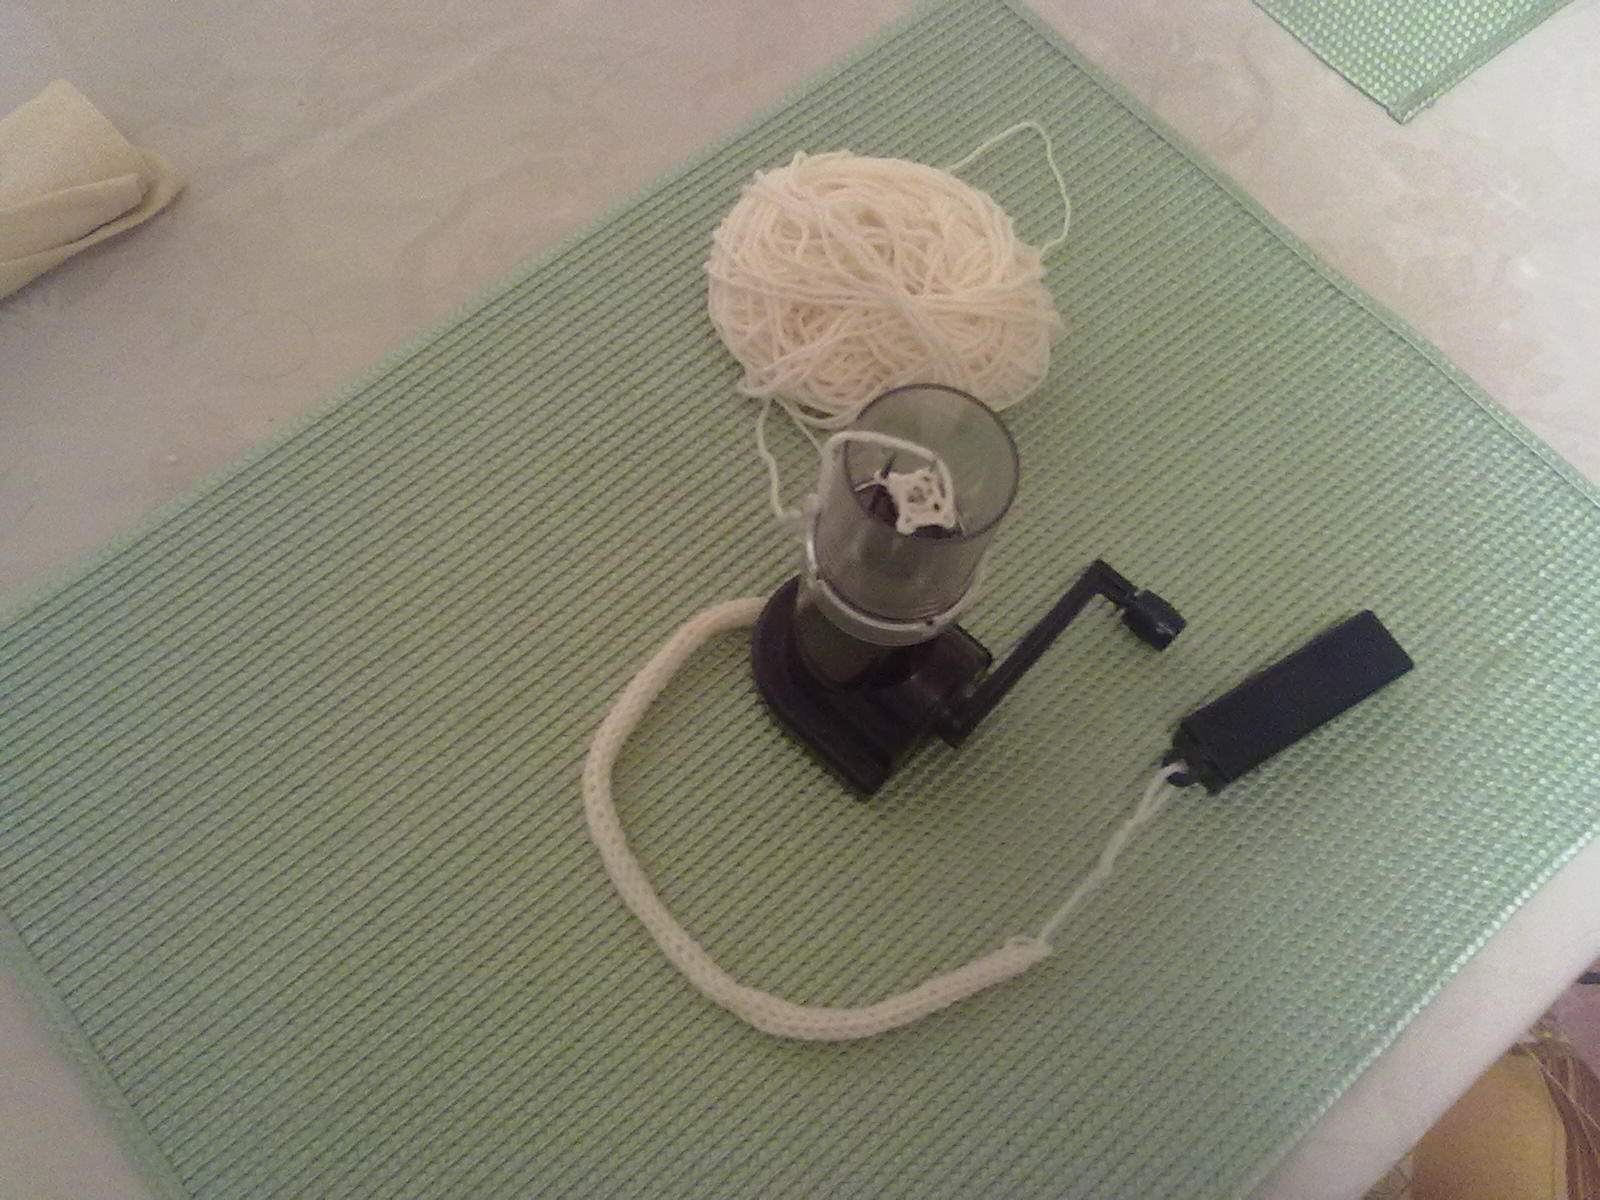 Tricotin a manovella, caterinetta, spool knitter